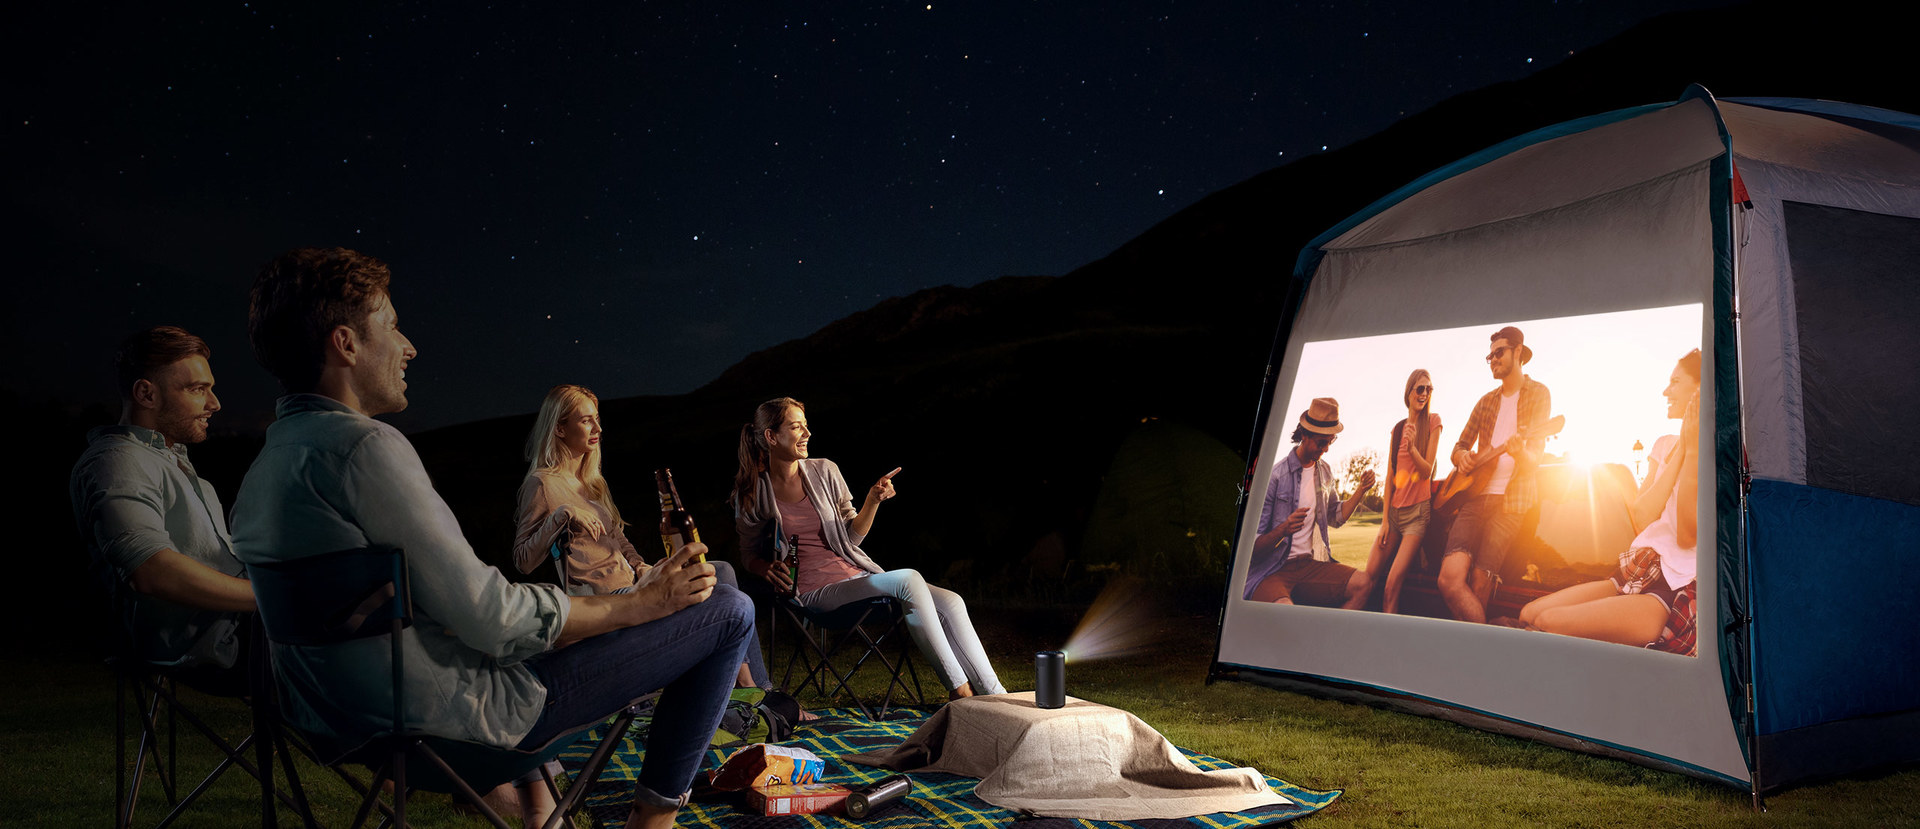 Nebula | Portable Projectors